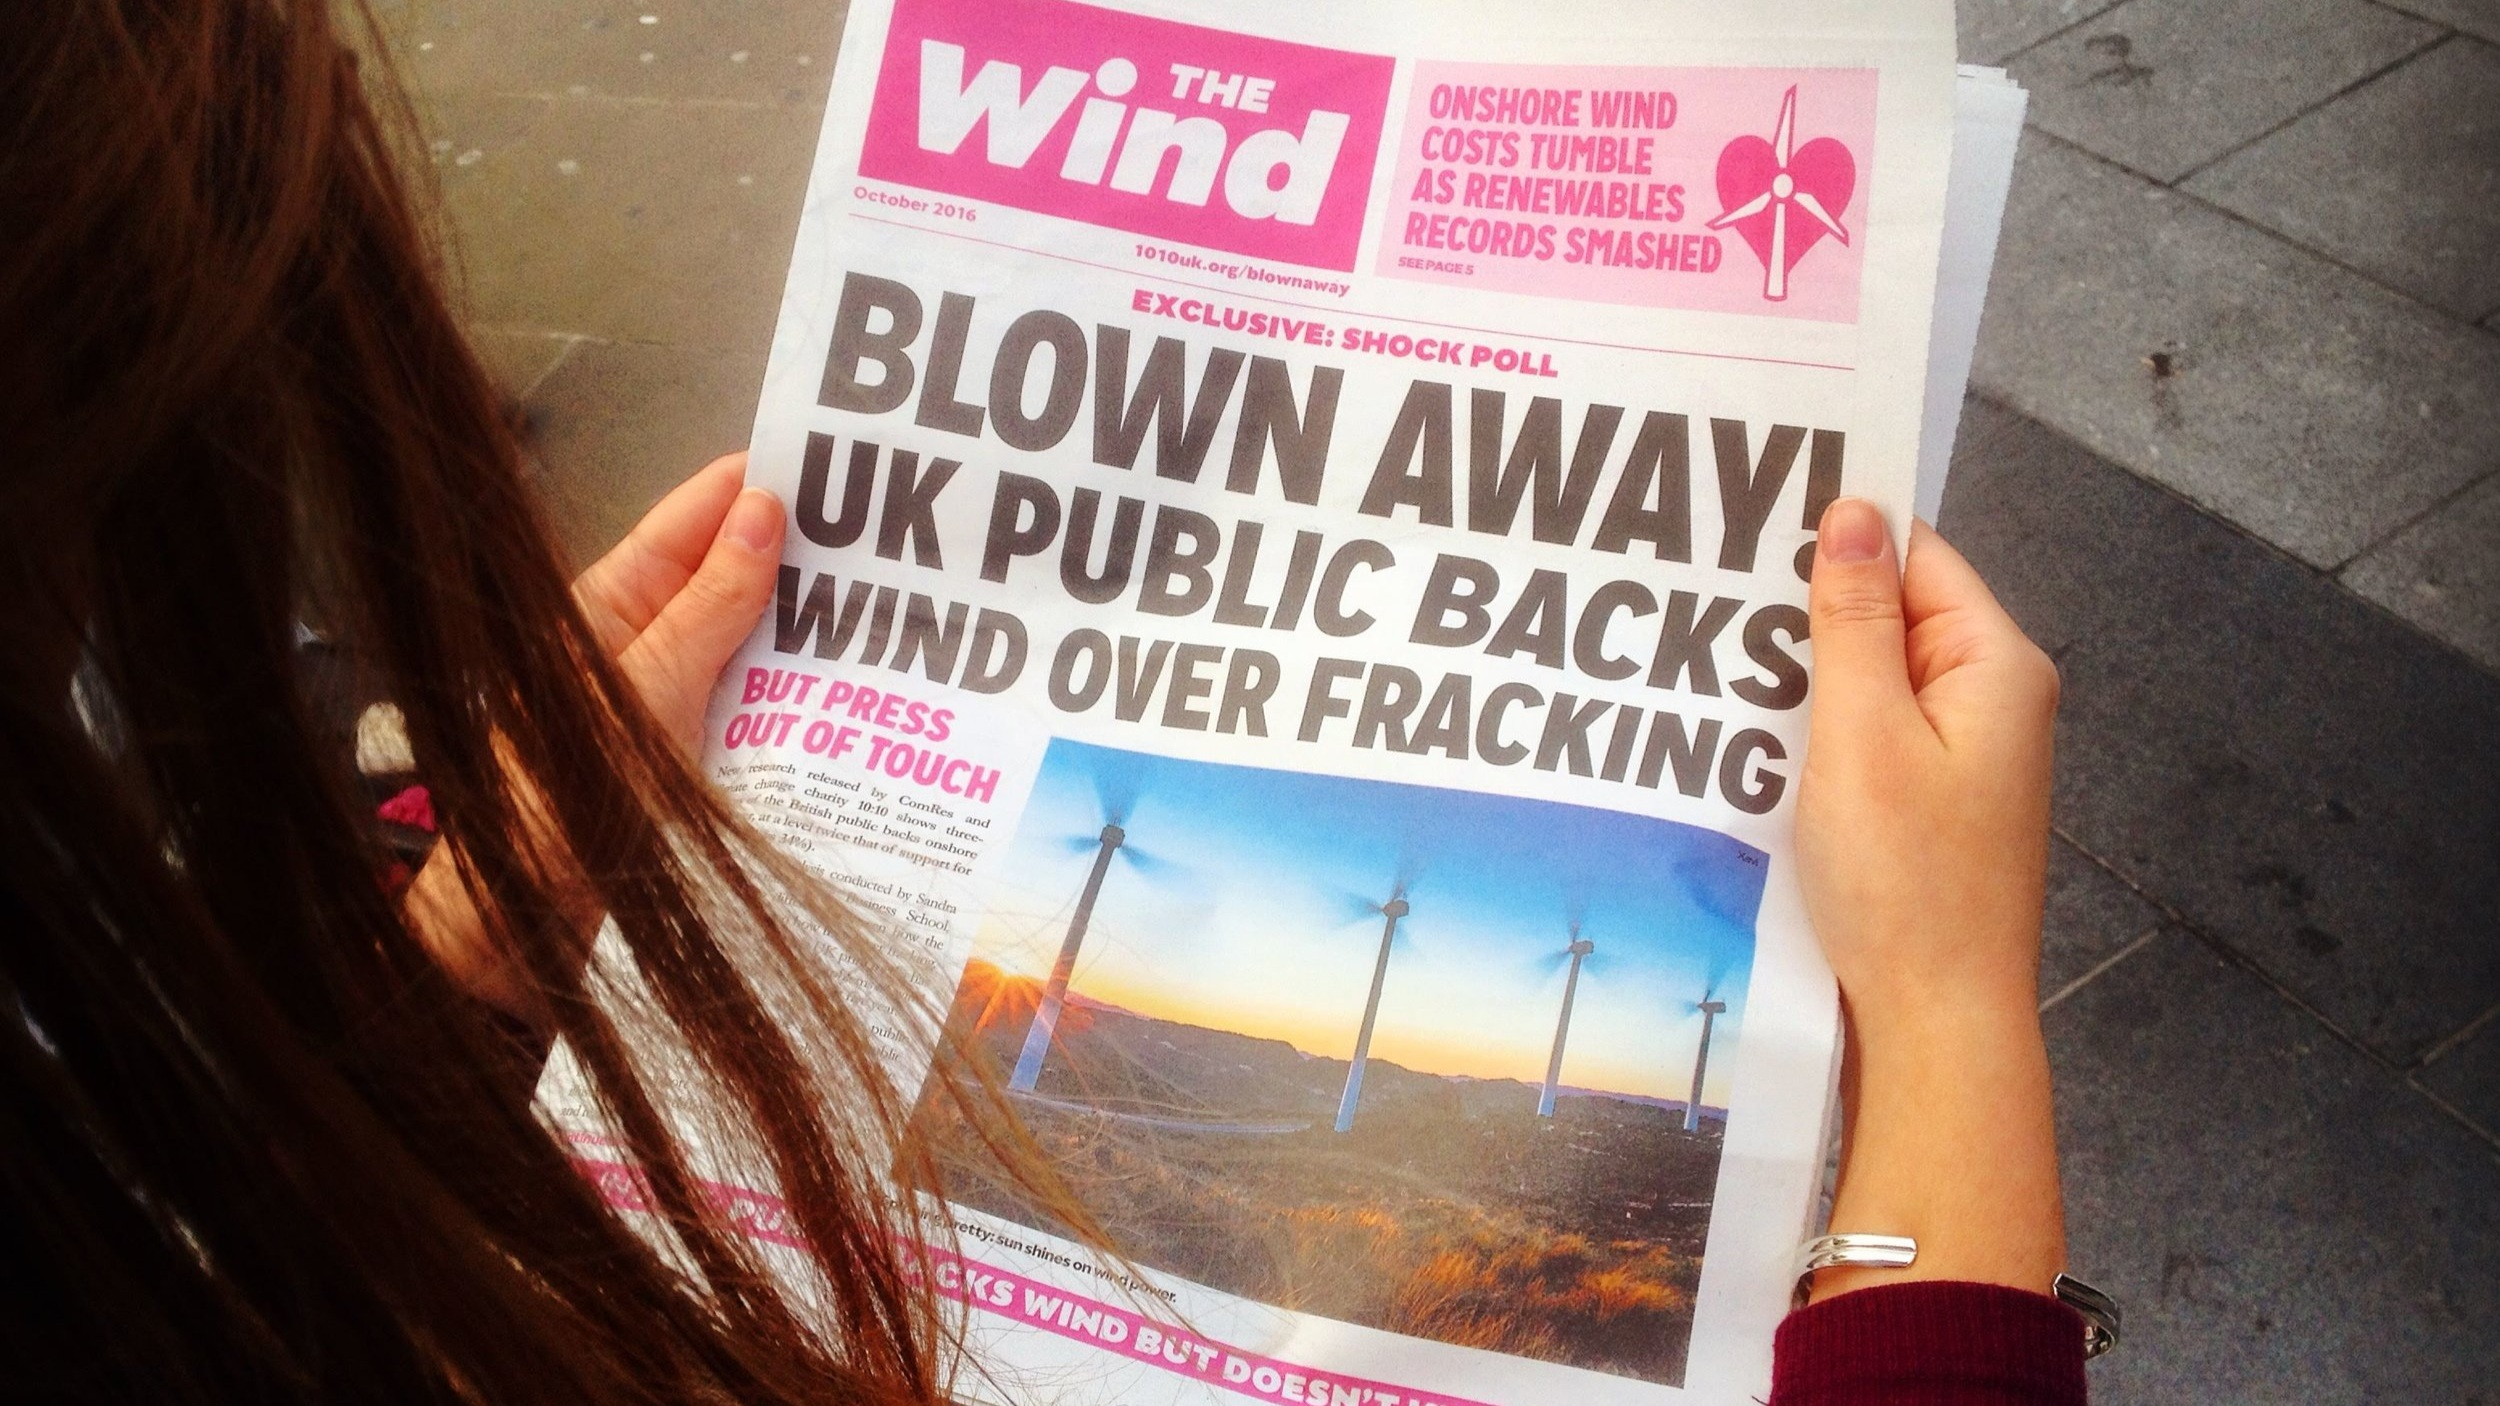 fake newspaper called 'the wind'. headline is 'blown away! UK public backs wind over fracking'. Link: resources